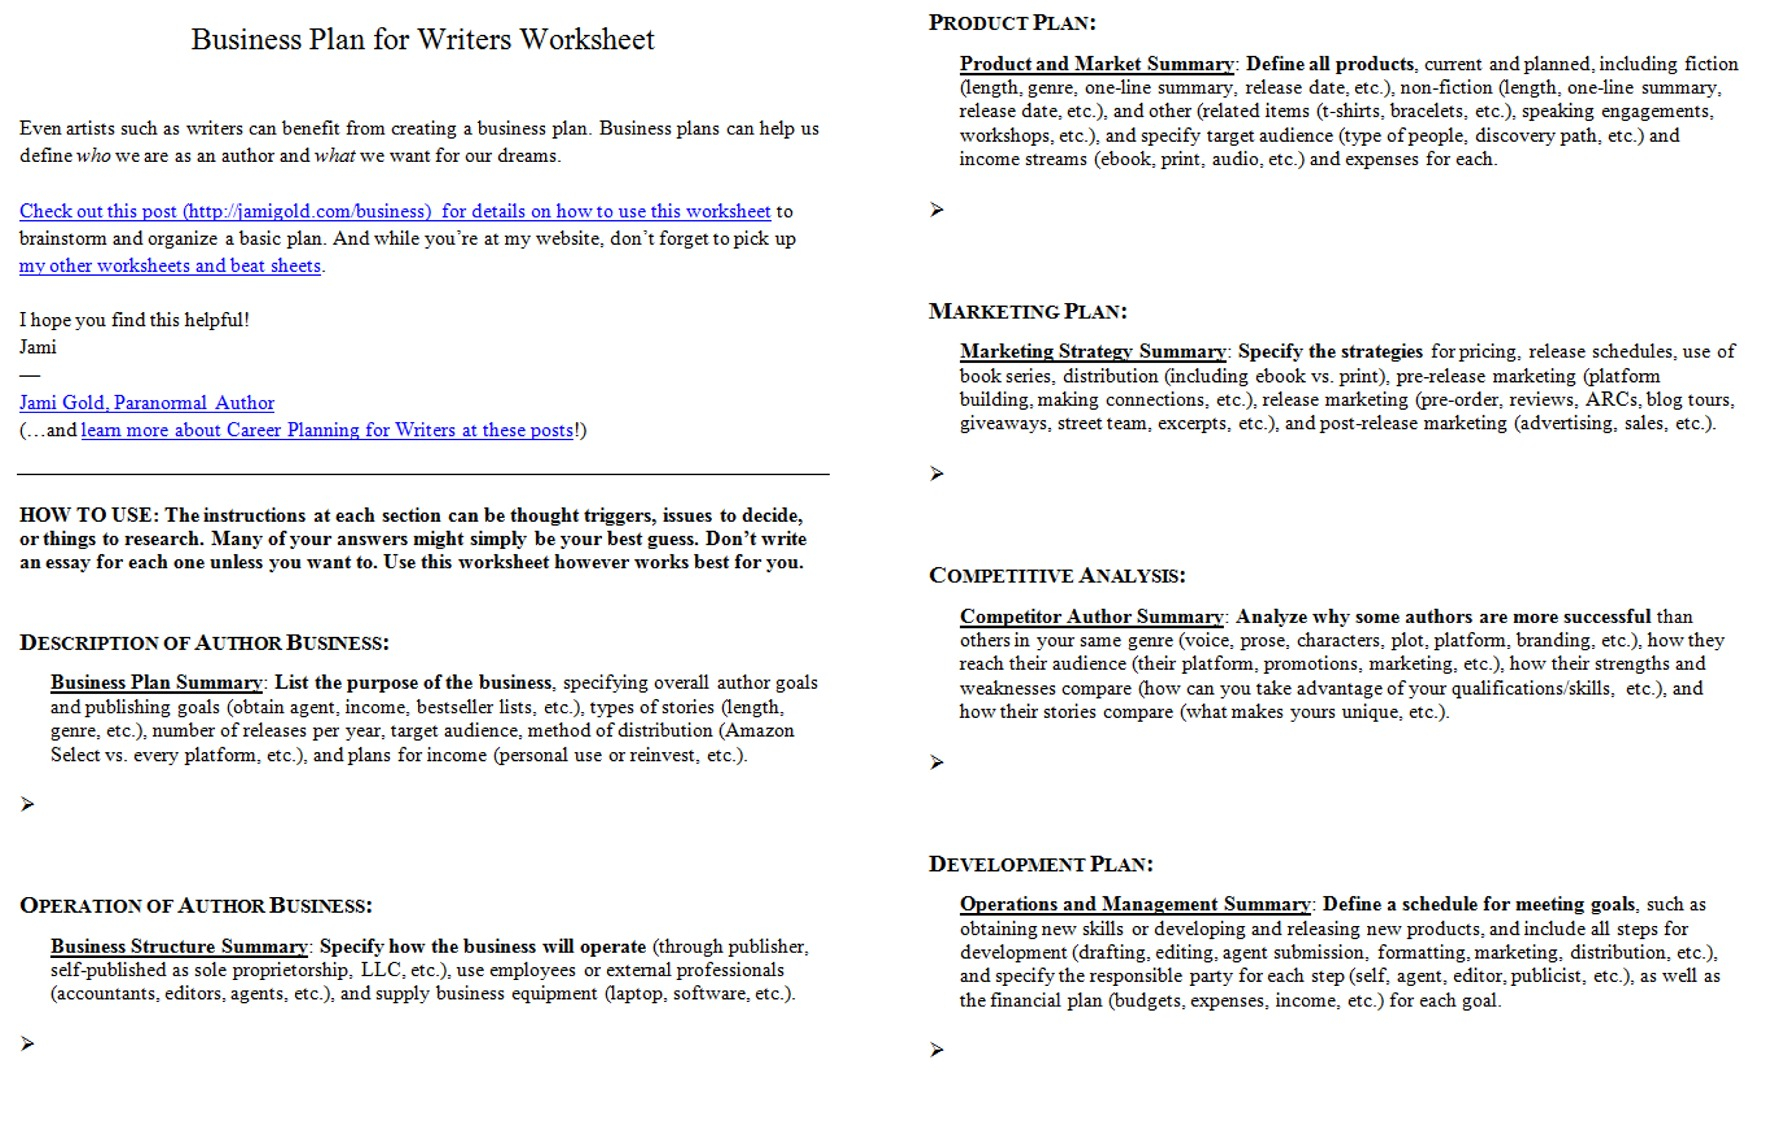 Aldiablosus  Unusual Worksheets For Writers  Jami Gold Paranormal Author With Magnificent Screen Shot Of Both Pages Of The Business Plan For Writers Worksheet With Extraordinary Minecraft Math Worksheets Also Free Worksheets For Kindergarten In Addition Pronoun Antecedent Agreement Worksheet And Polynomial Review Worksheet As Well As Decomposing Fractions Worksheets Additionally One Step Inequalities Worksheet From Jamigoldcom With Aldiablosus  Magnificent Worksheets For Writers  Jami Gold Paranormal Author With Extraordinary Screen Shot Of Both Pages Of The Business Plan For Writers Worksheet And Unusual Minecraft Math Worksheets Also Free Worksheets For Kindergarten In Addition Pronoun Antecedent Agreement Worksheet From Jamigoldcom